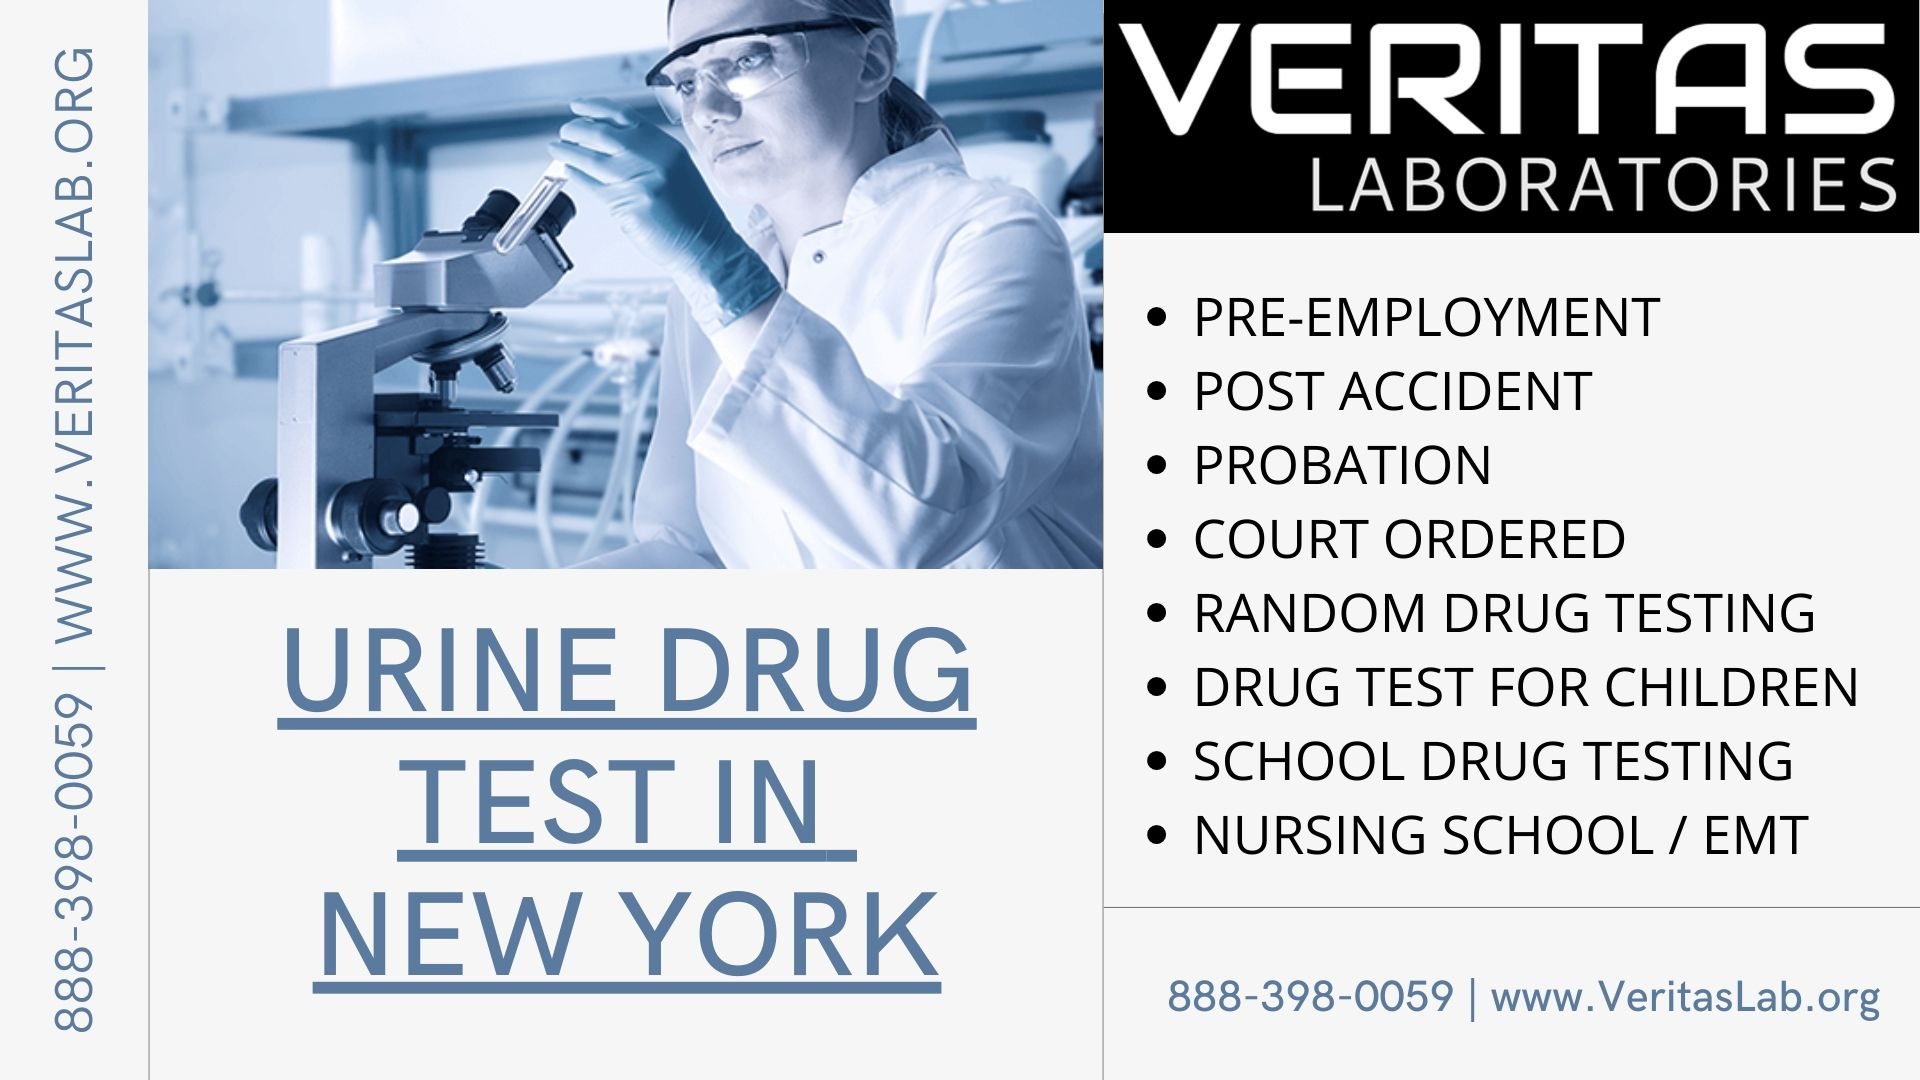 URINE DRUG TEST IN NEW YORK ALCOHOL ETG PETH BLOOD TEST EXPLAINED FAQ VERITAS LAB